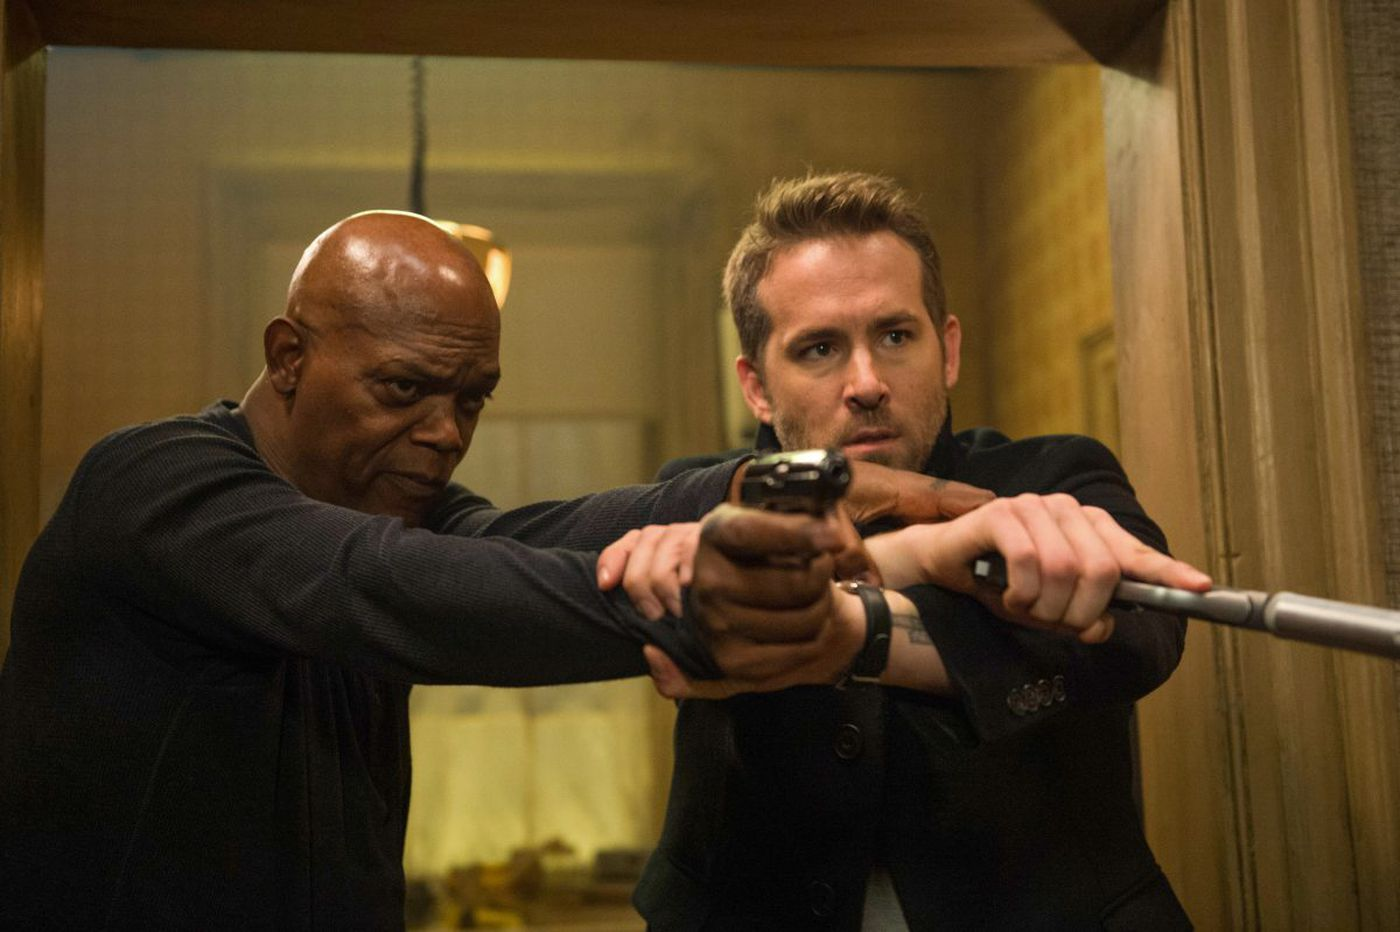 Suddenly in the mood for an antifascist exploitation comedy? 'Hitman's Bodyguard' nails it